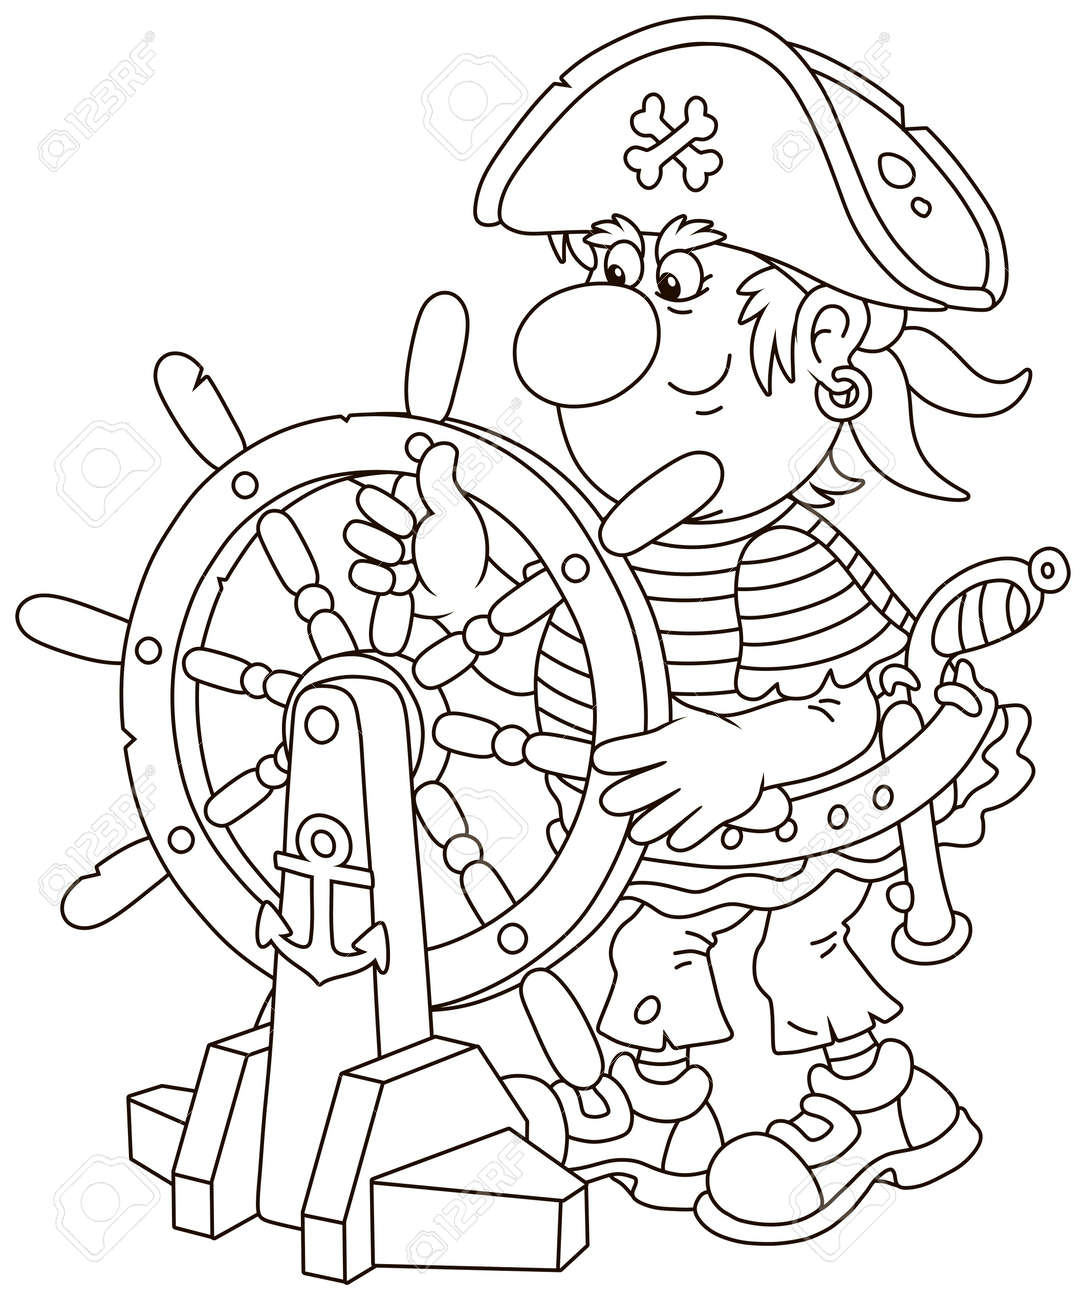 Funny sea pirate in a cocked hat holding a wooden helm and steering